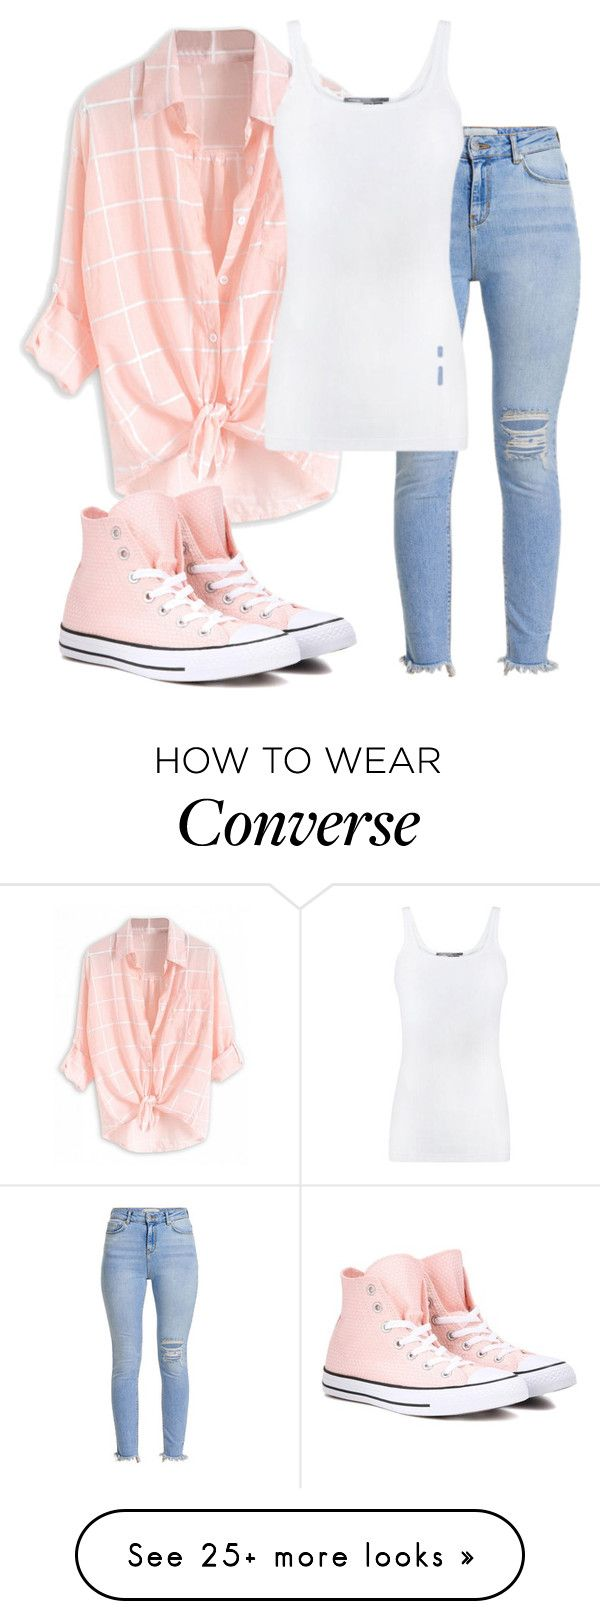 """Untitled #218"" by whatisshewearing on Polyvore featuring Converse and Vince"